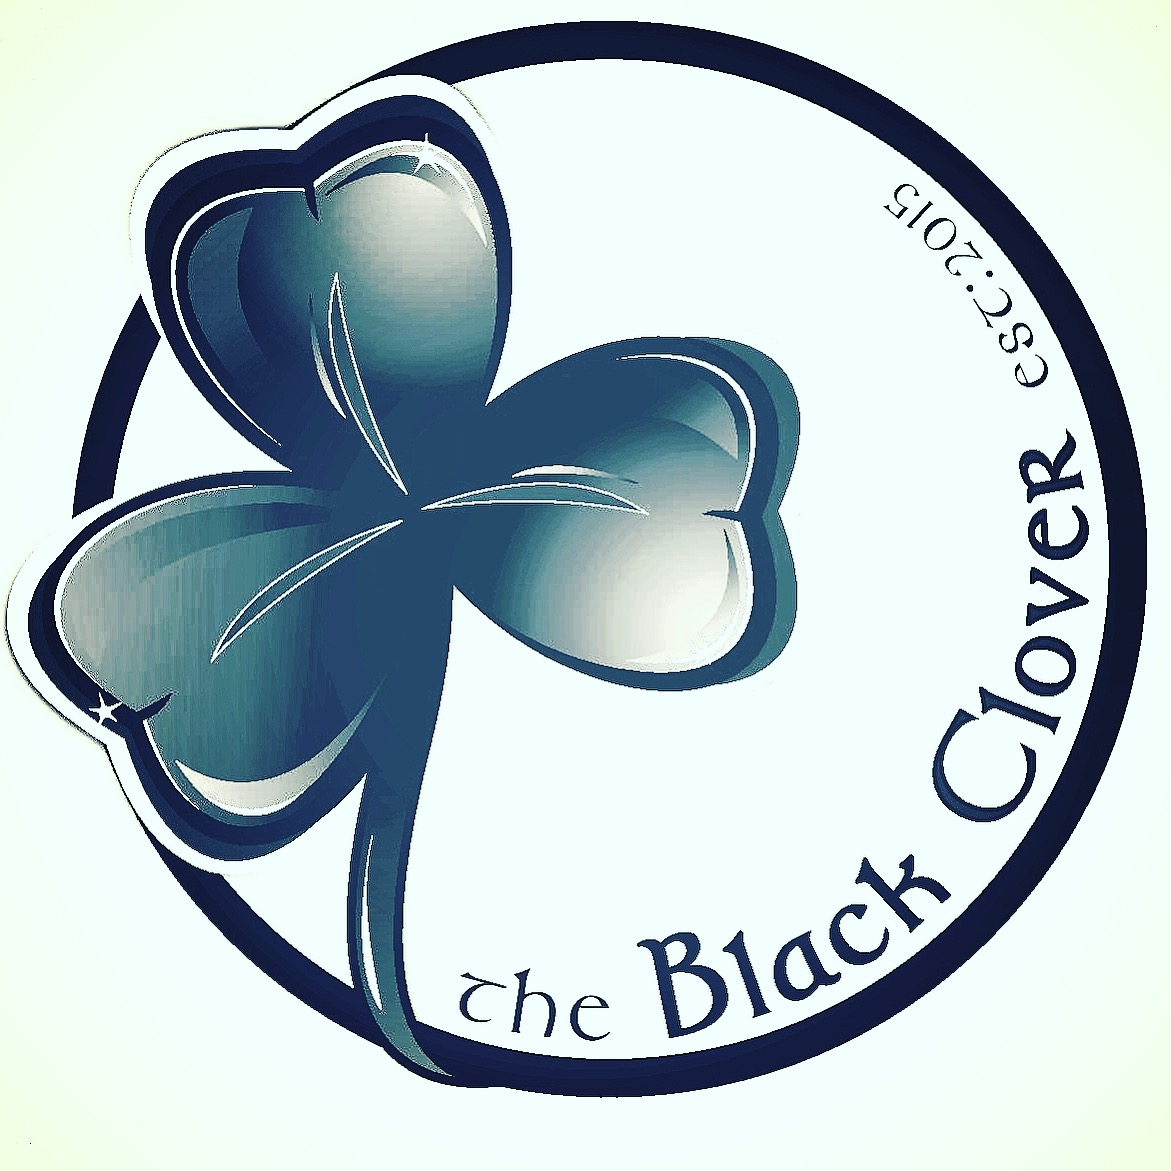 The Black Clover